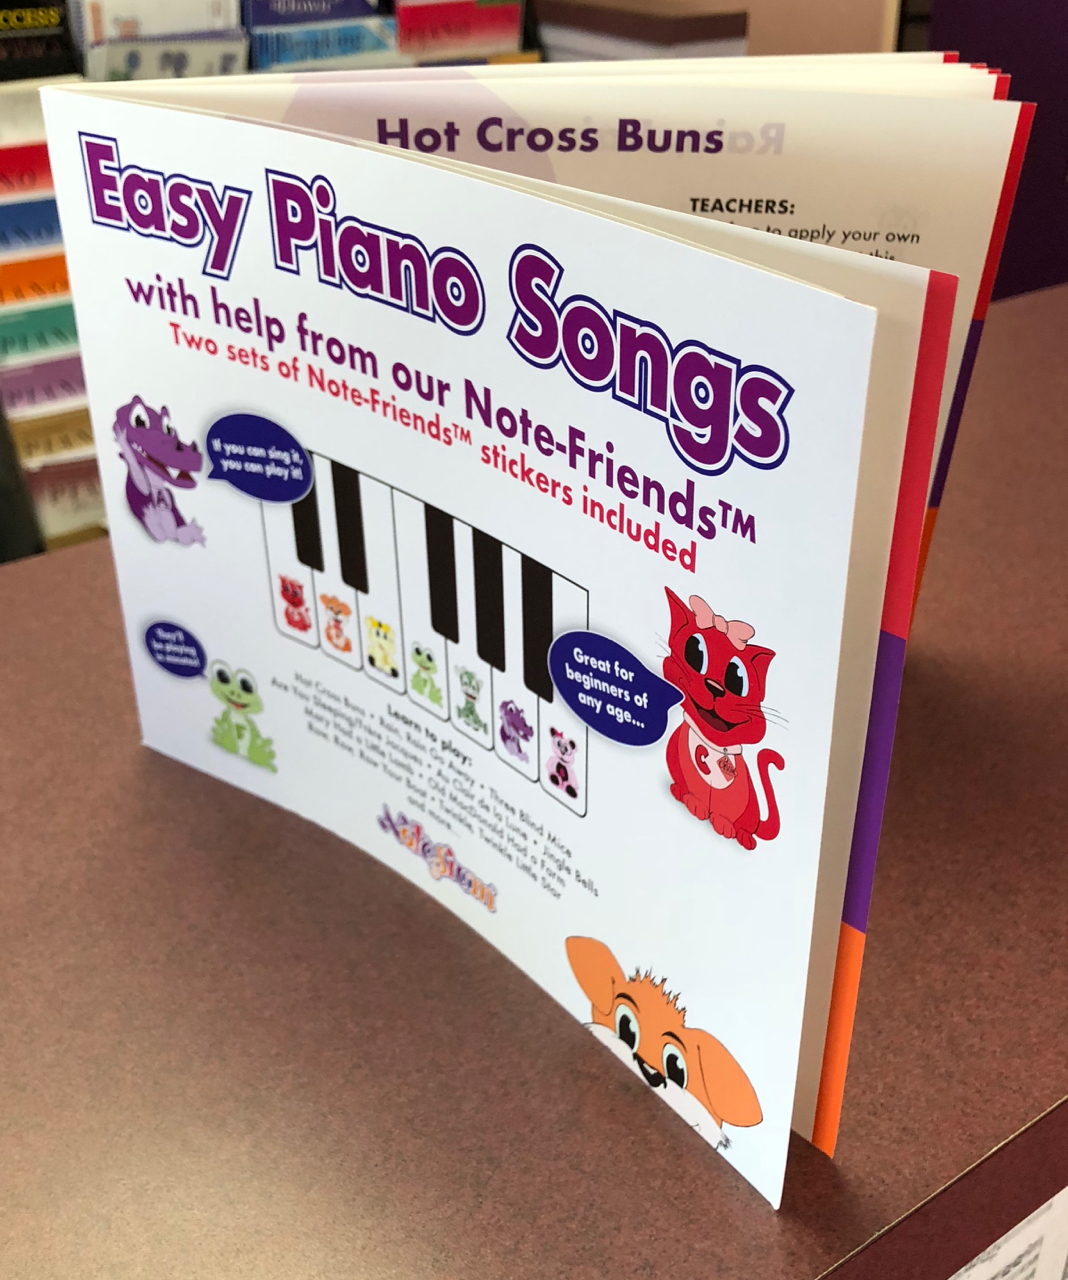 Easy Piano Songs Book for Kids